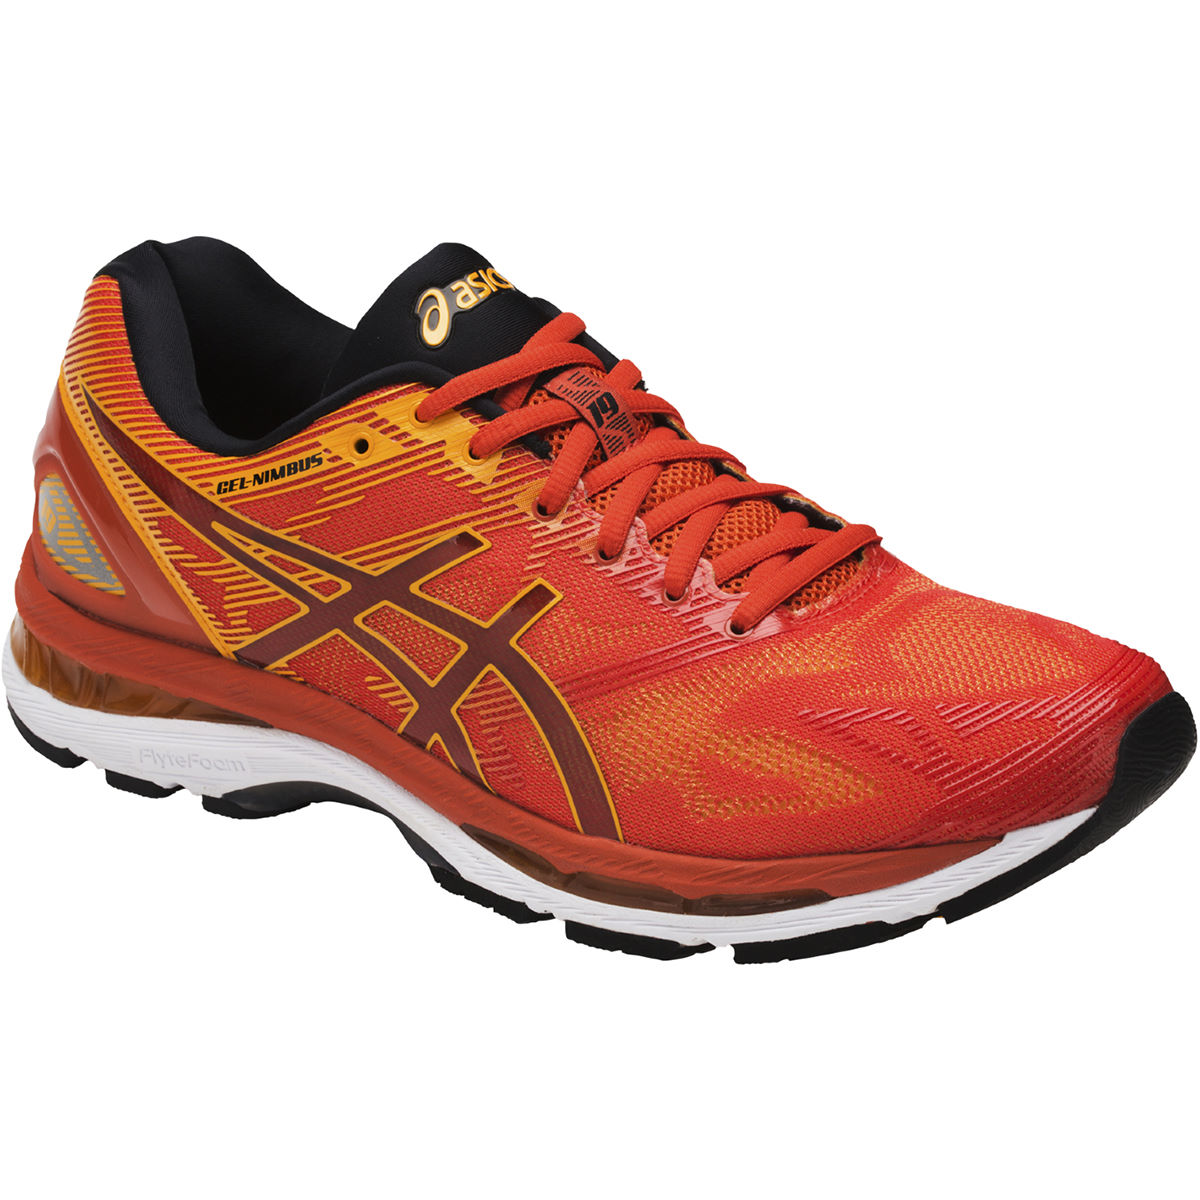 Design Asics Running Shoes